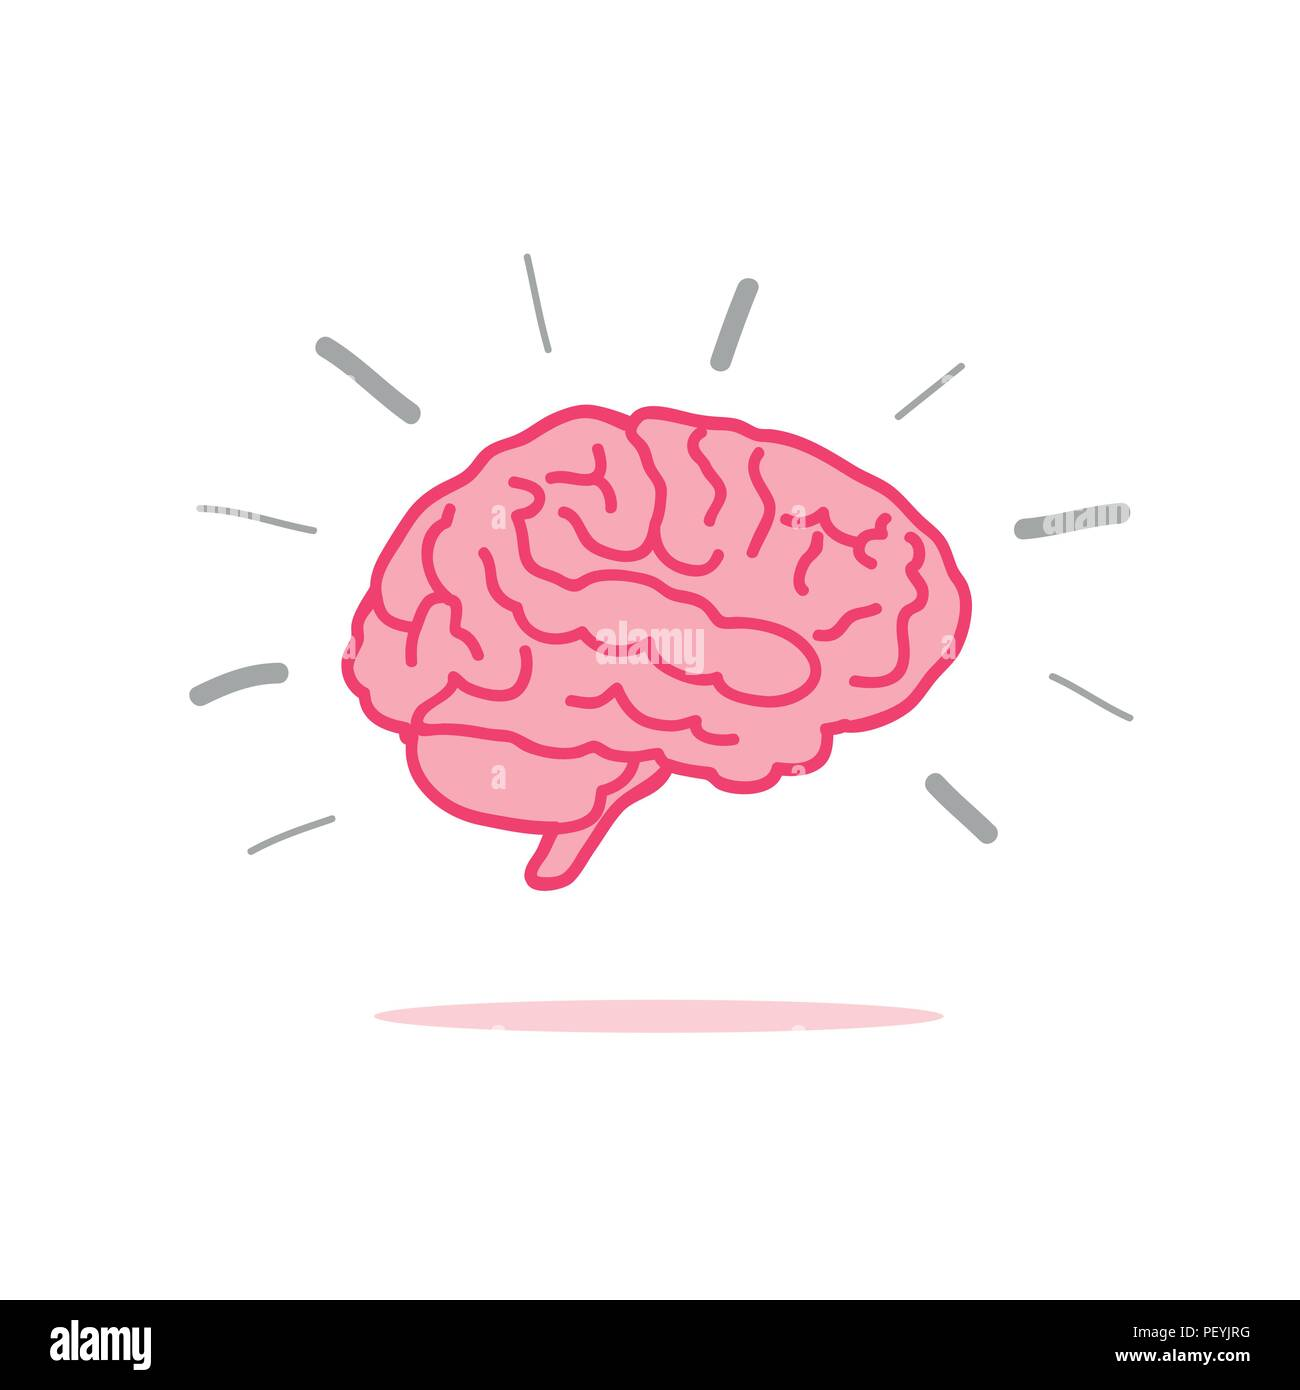 brainstorm pink brain icon vector illustration EPS10 - Stock Image